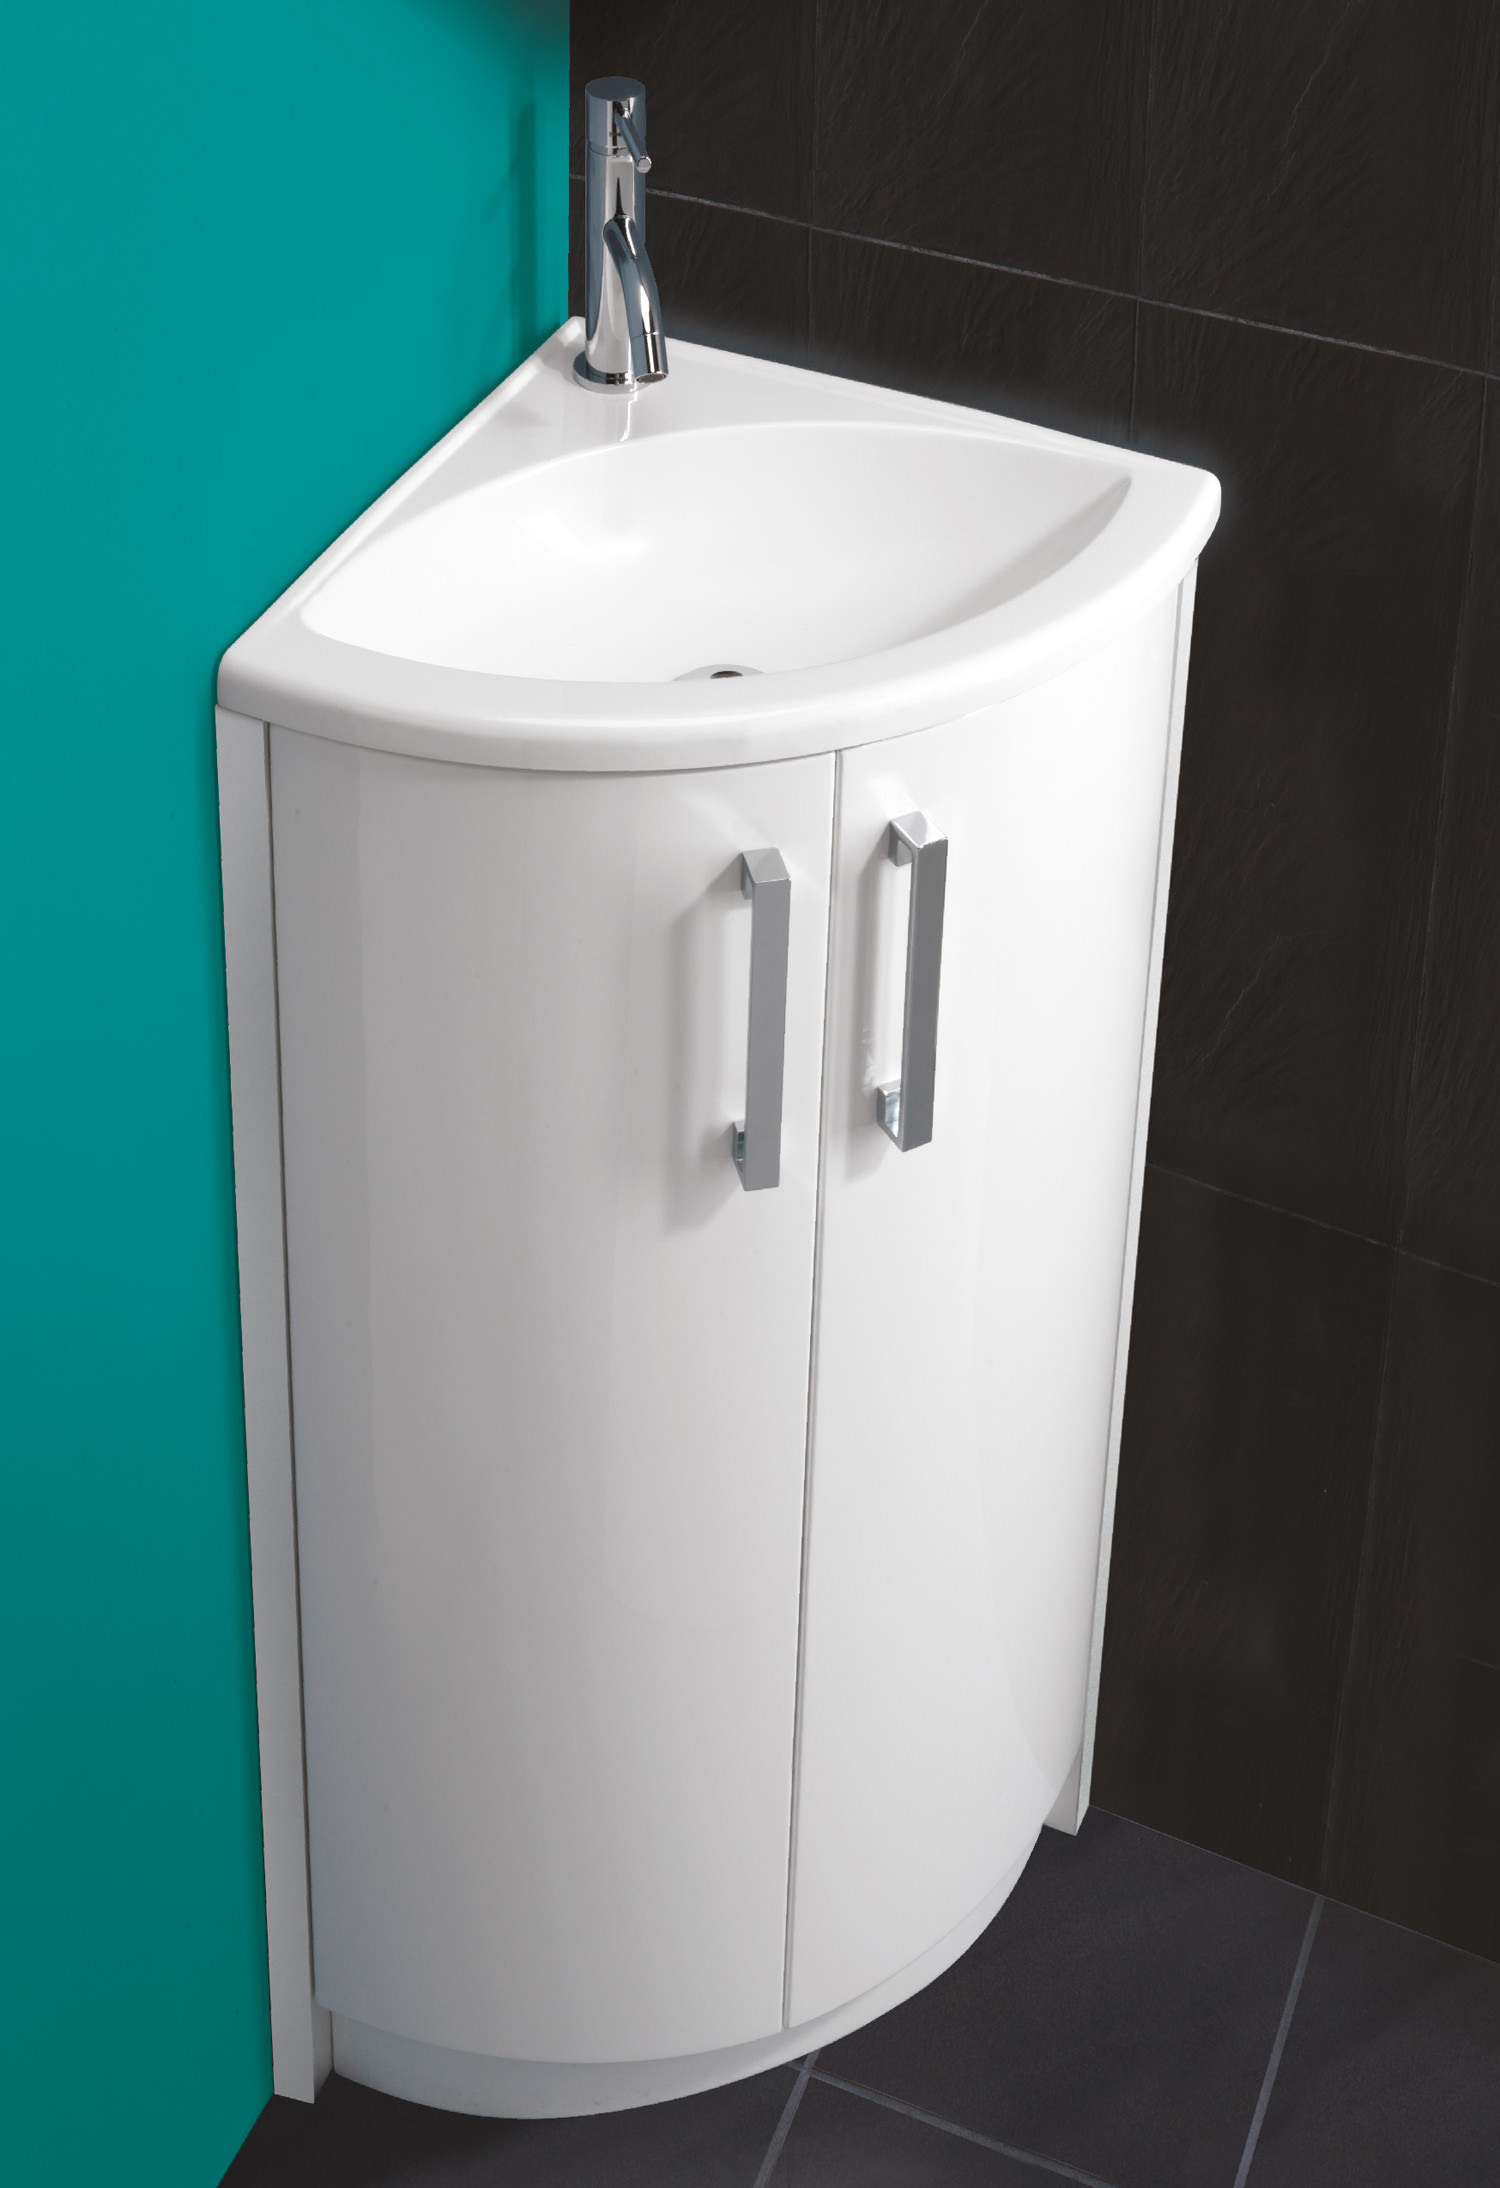 Corner Basin And Vanity Unit : ... corner vanity units hib solo white unit and basin 625 x 820mm